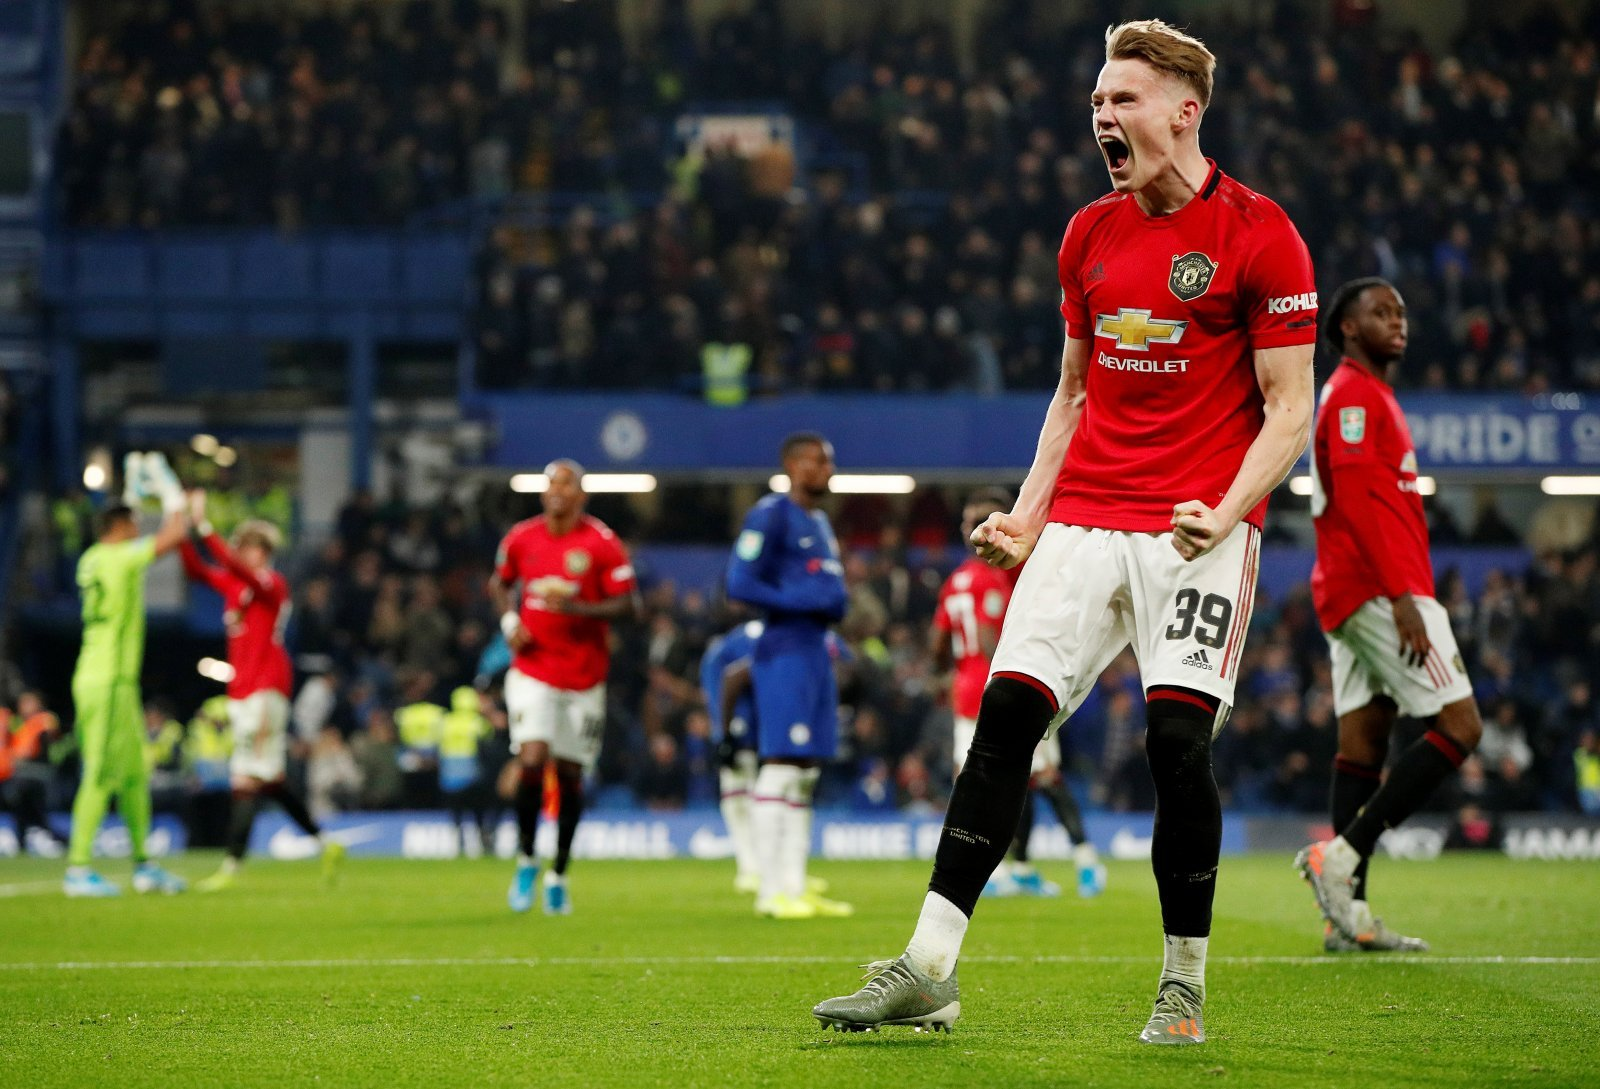 Manchester United: Fans react to Scott McTominay's leadership skills